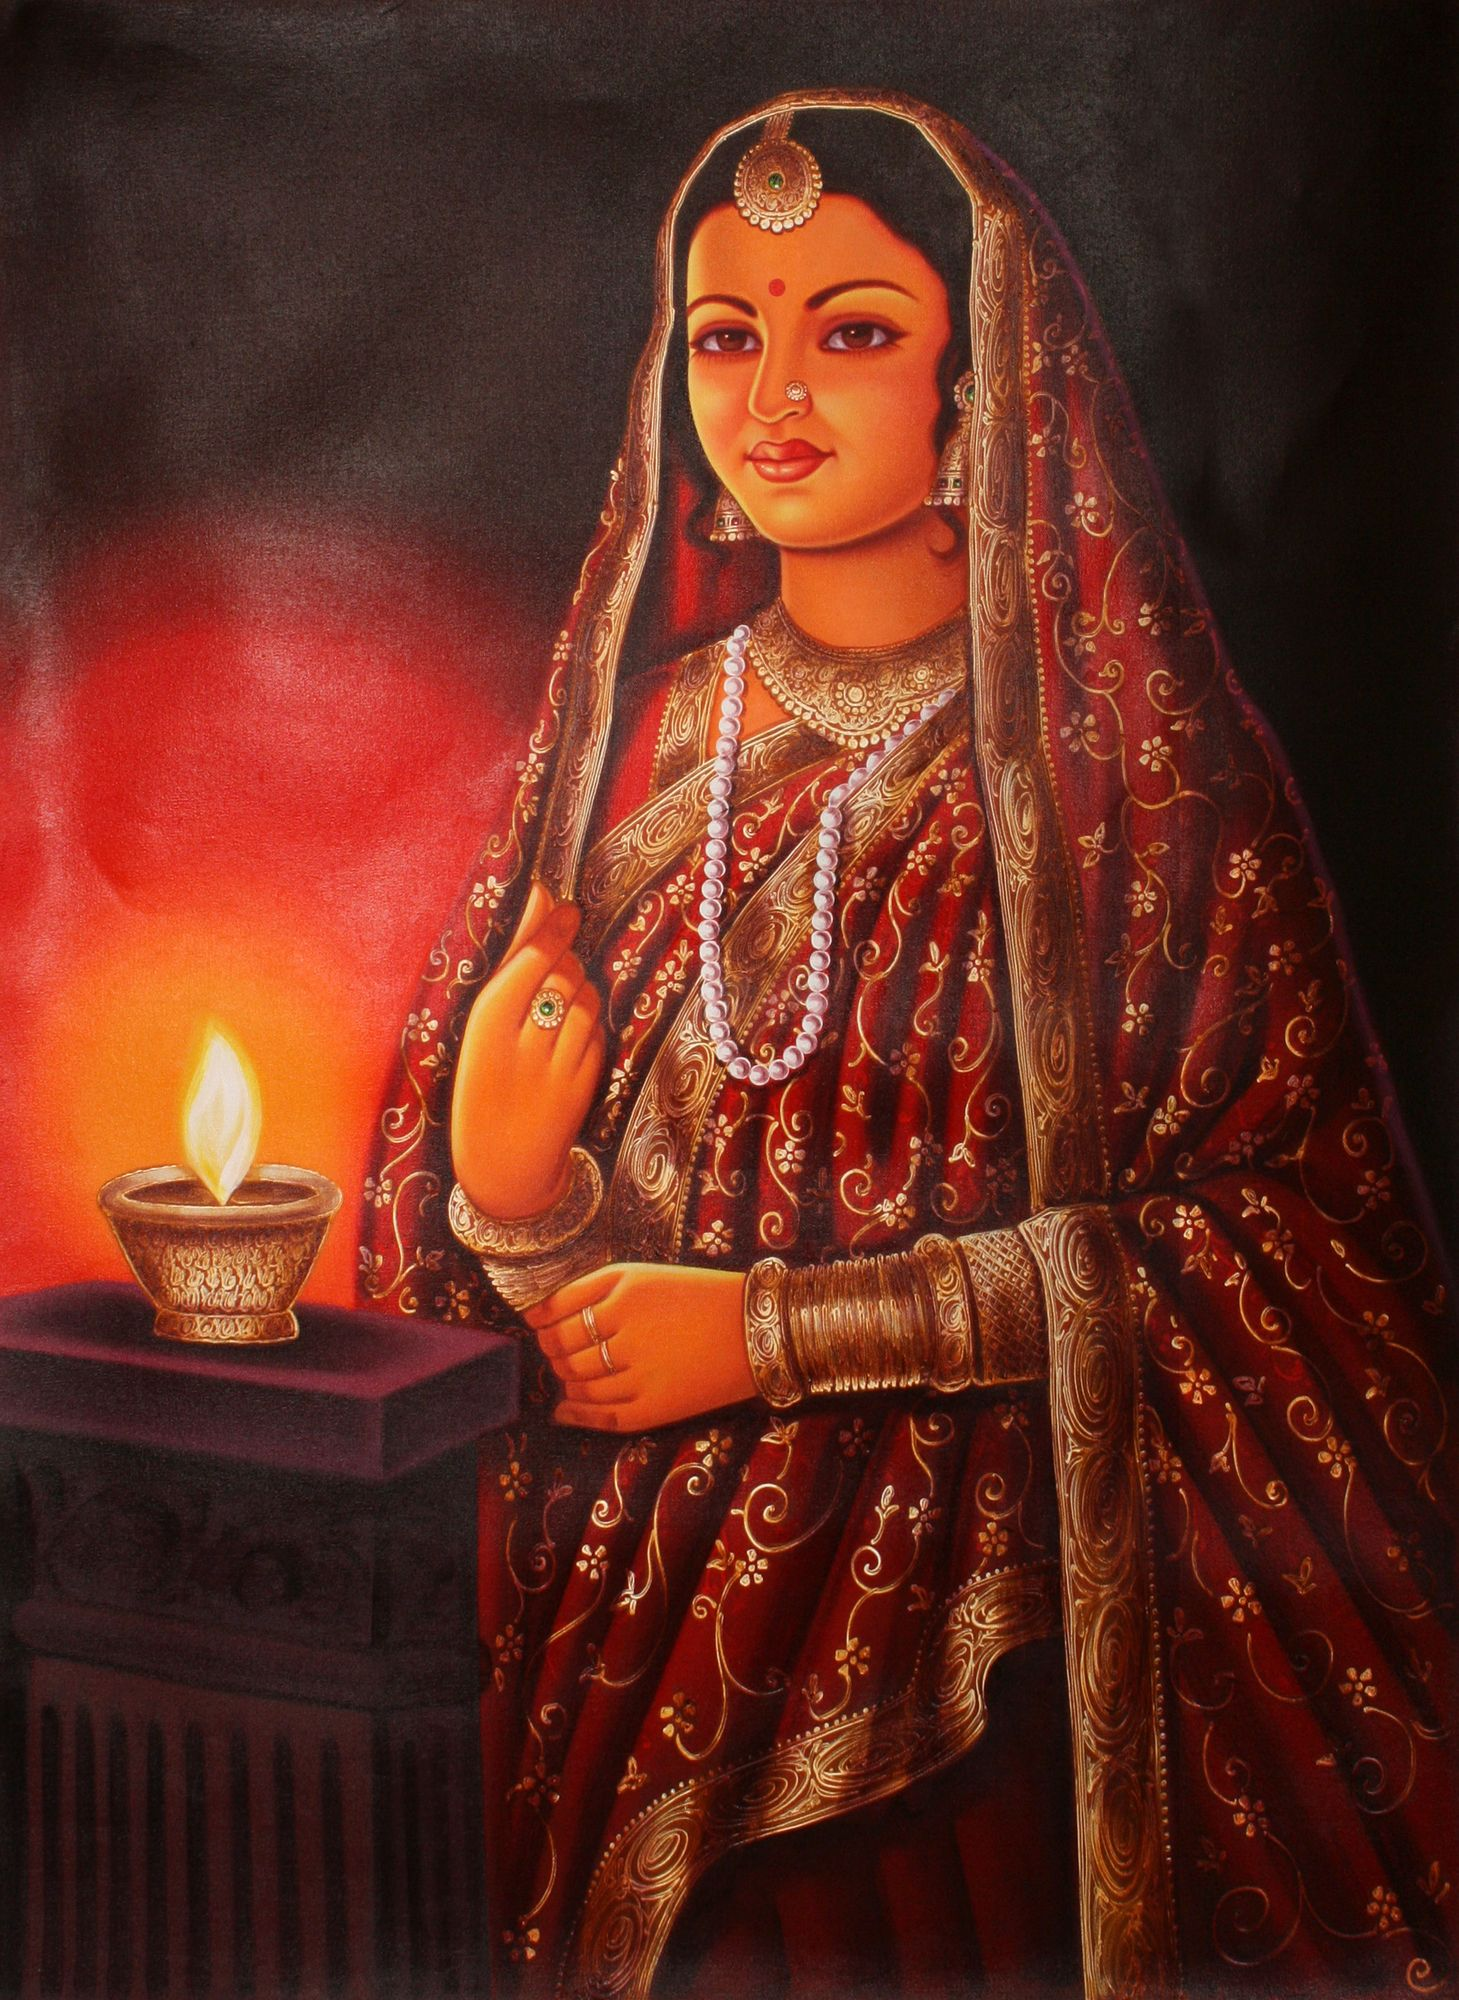 Lady with Lamp in 2020 Indian art paintings, Modern